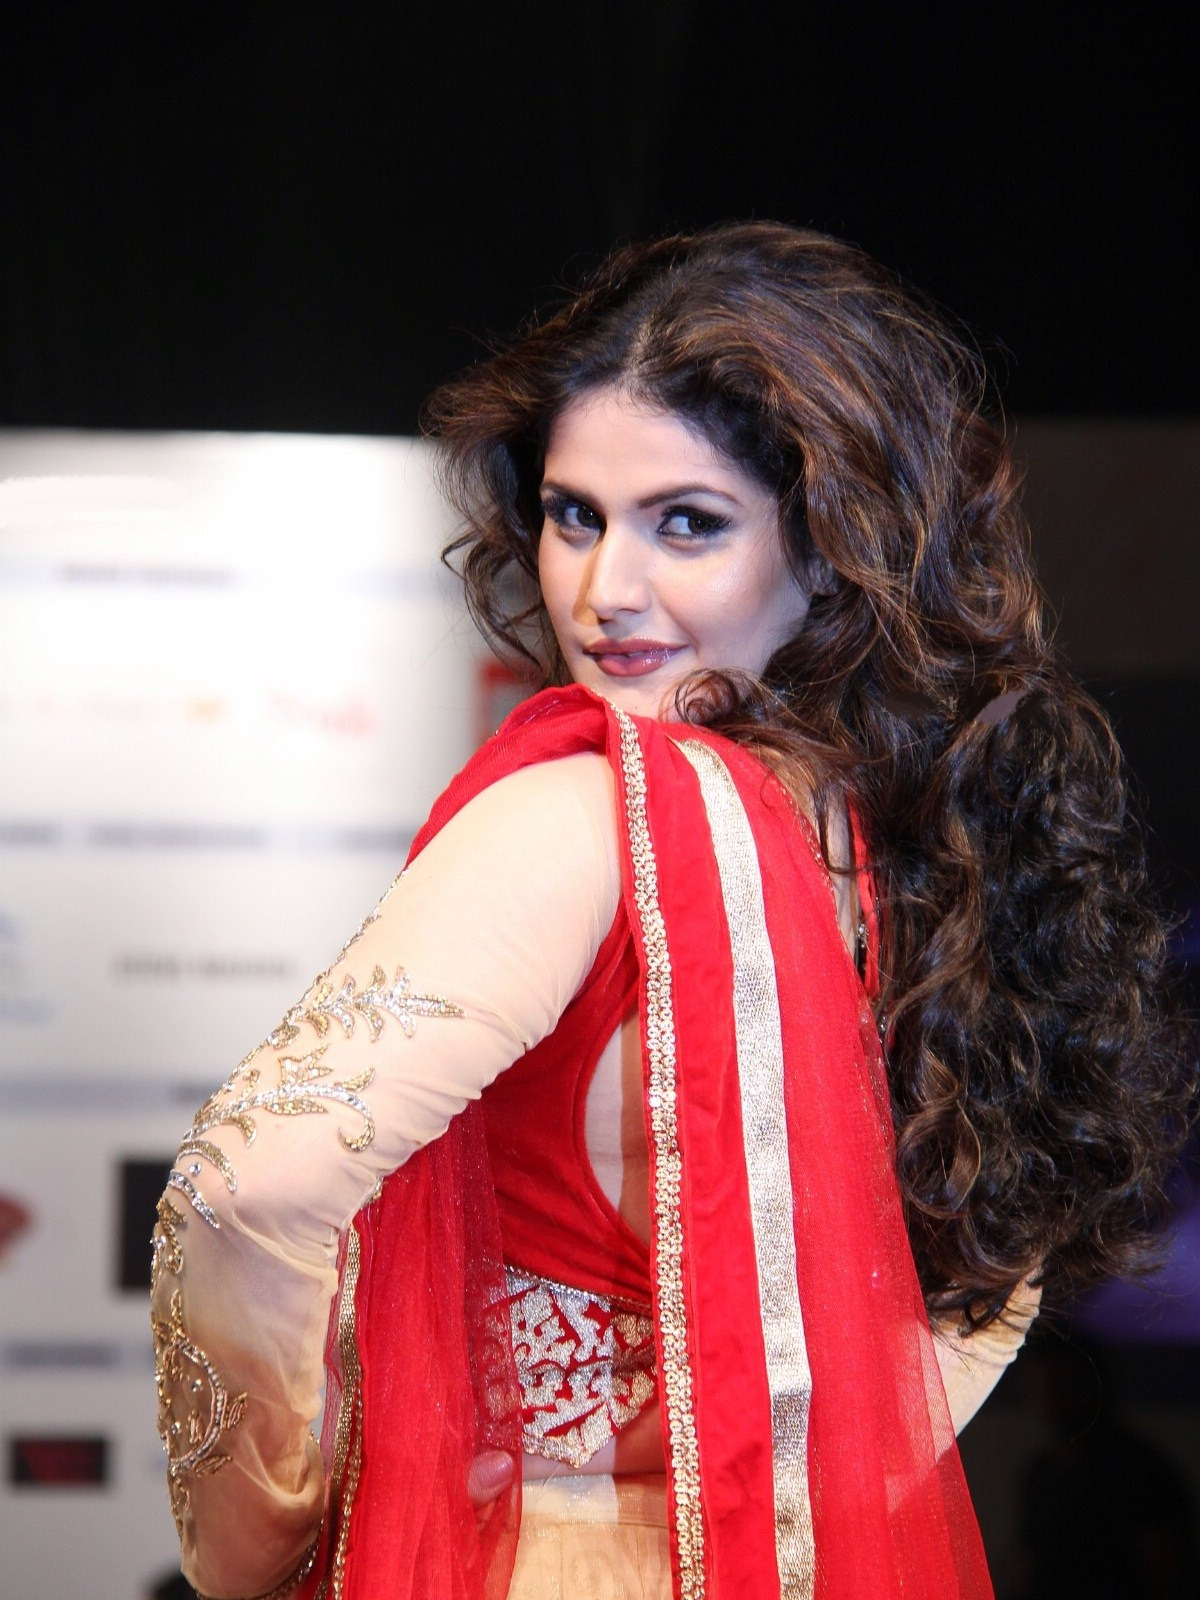 High Quality Bollywood Celebrity Pictures: Zarine Khan